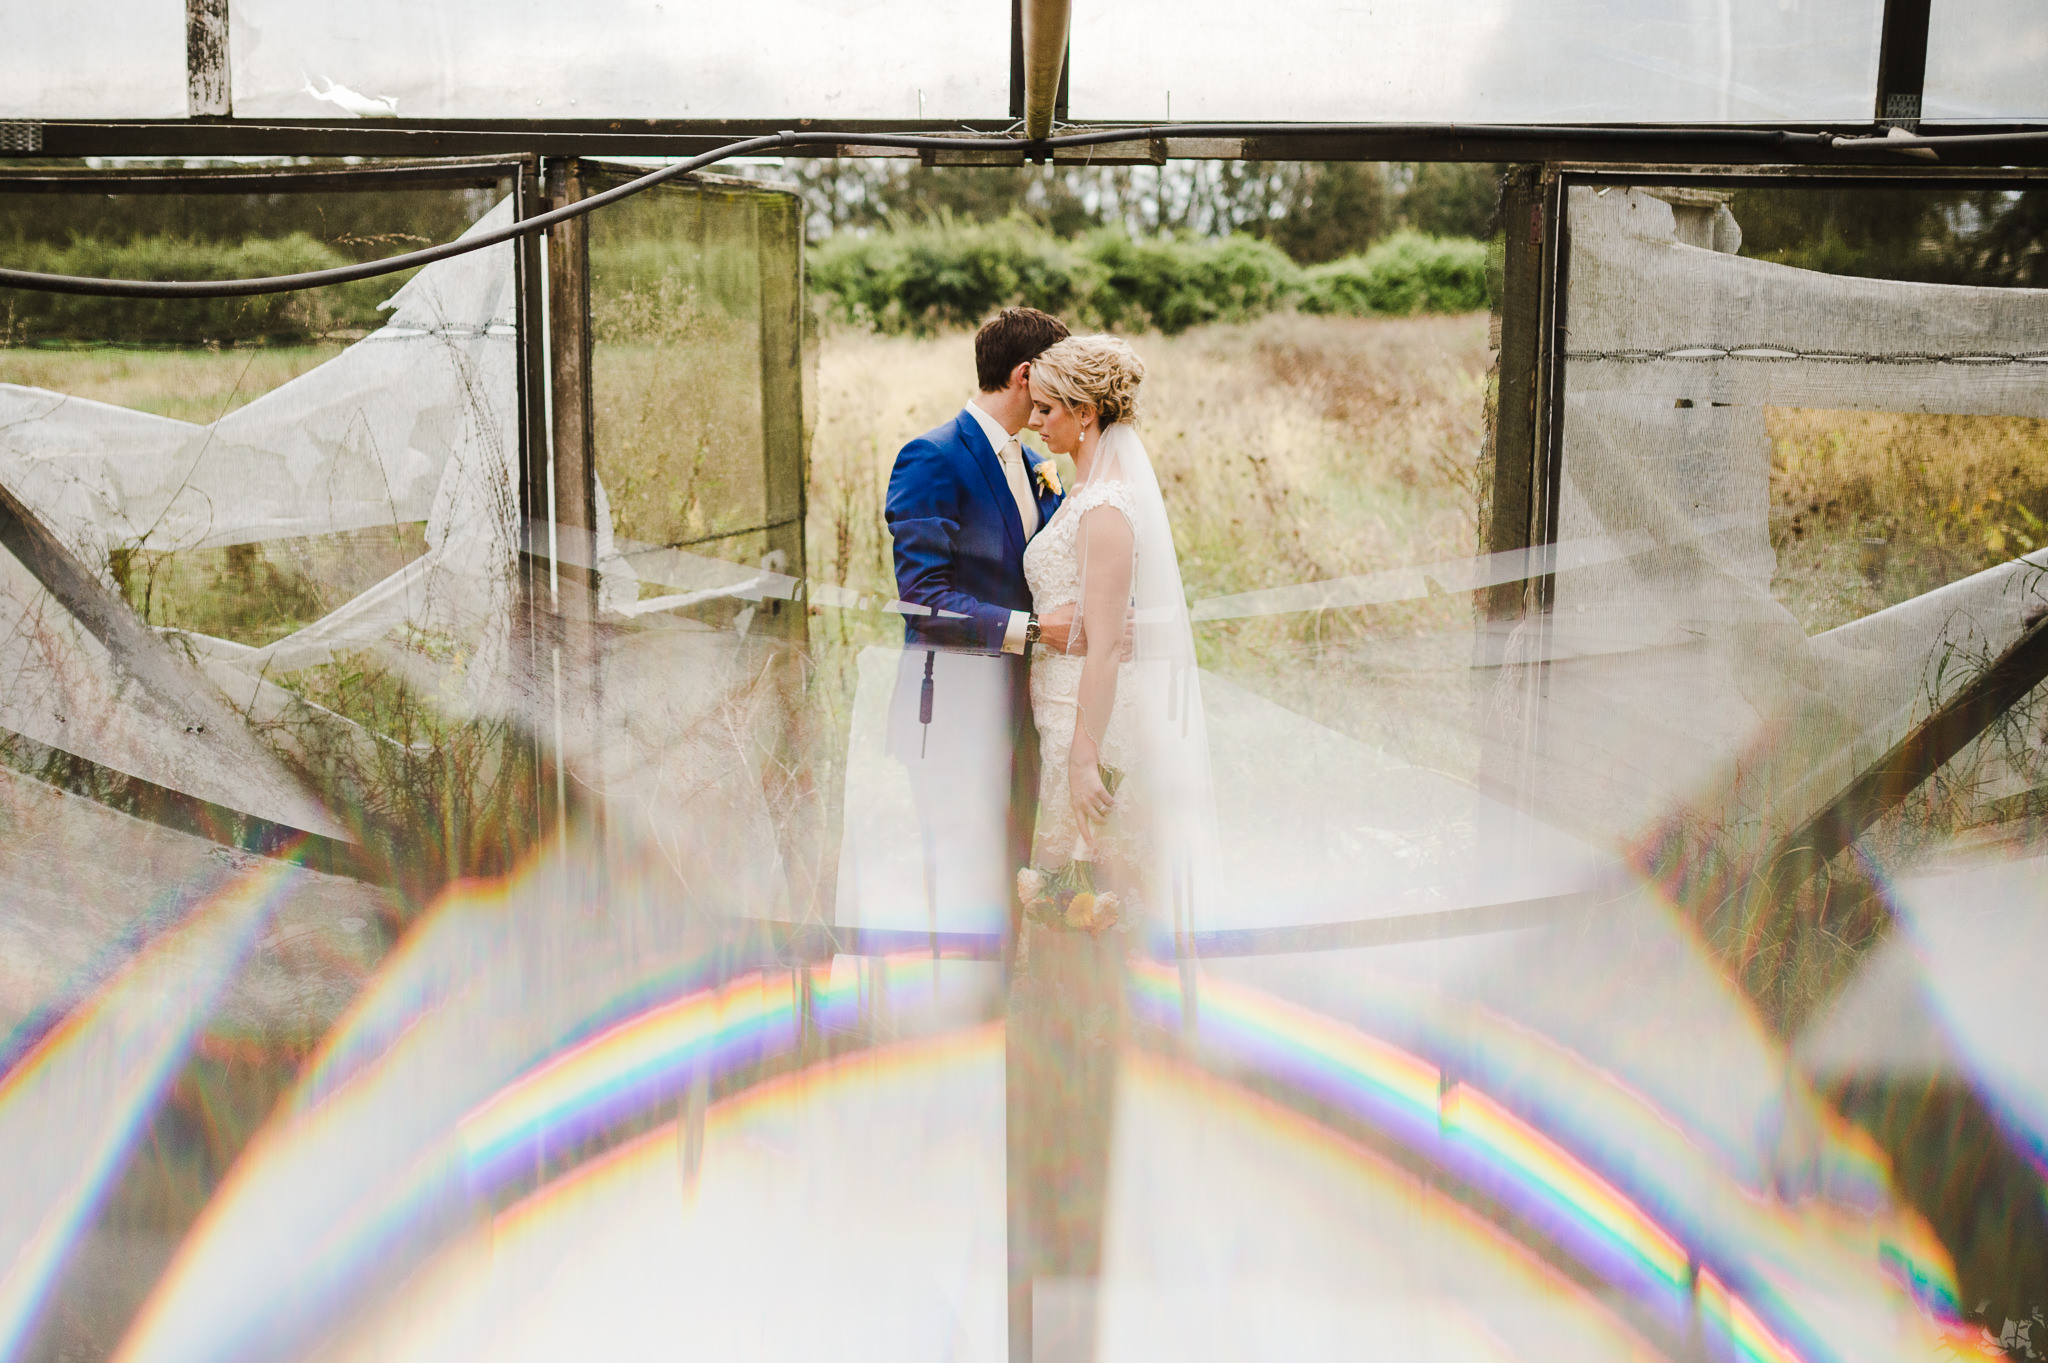 34 bride and groom prismed sam hurd technique reflection rainbow.JPG